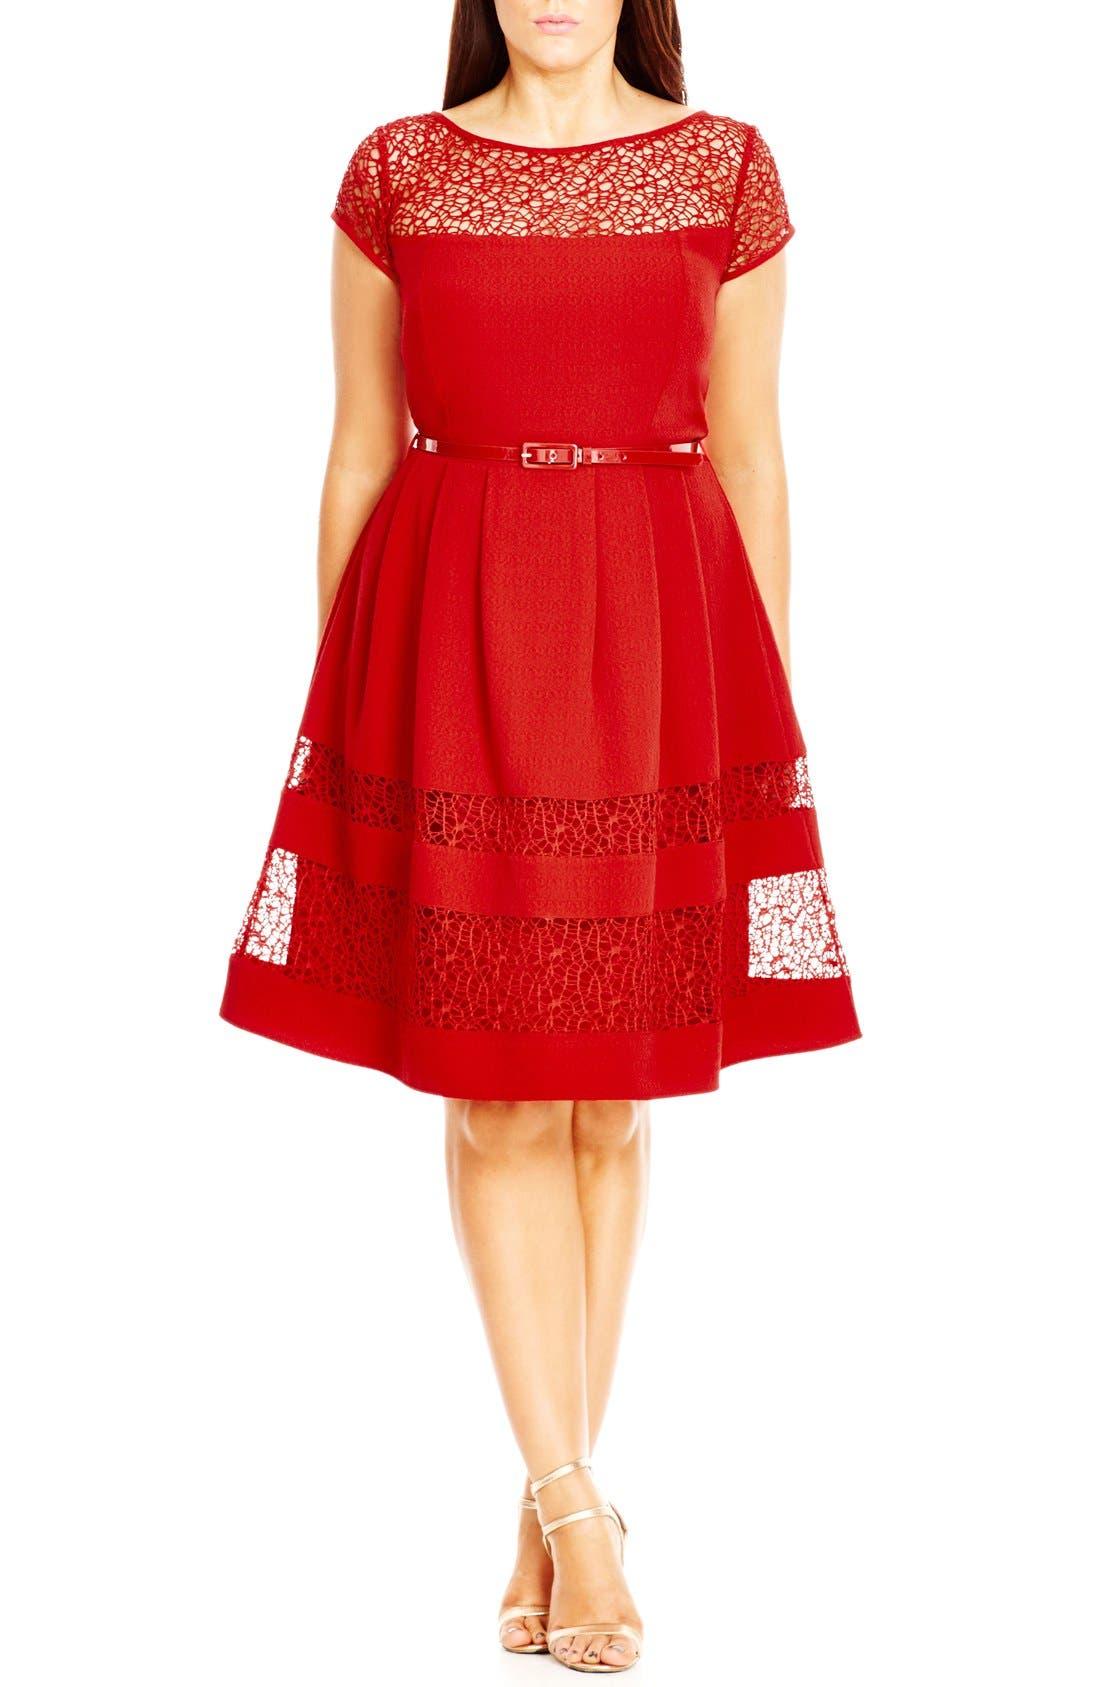 Red and white fit and flare dress plus size